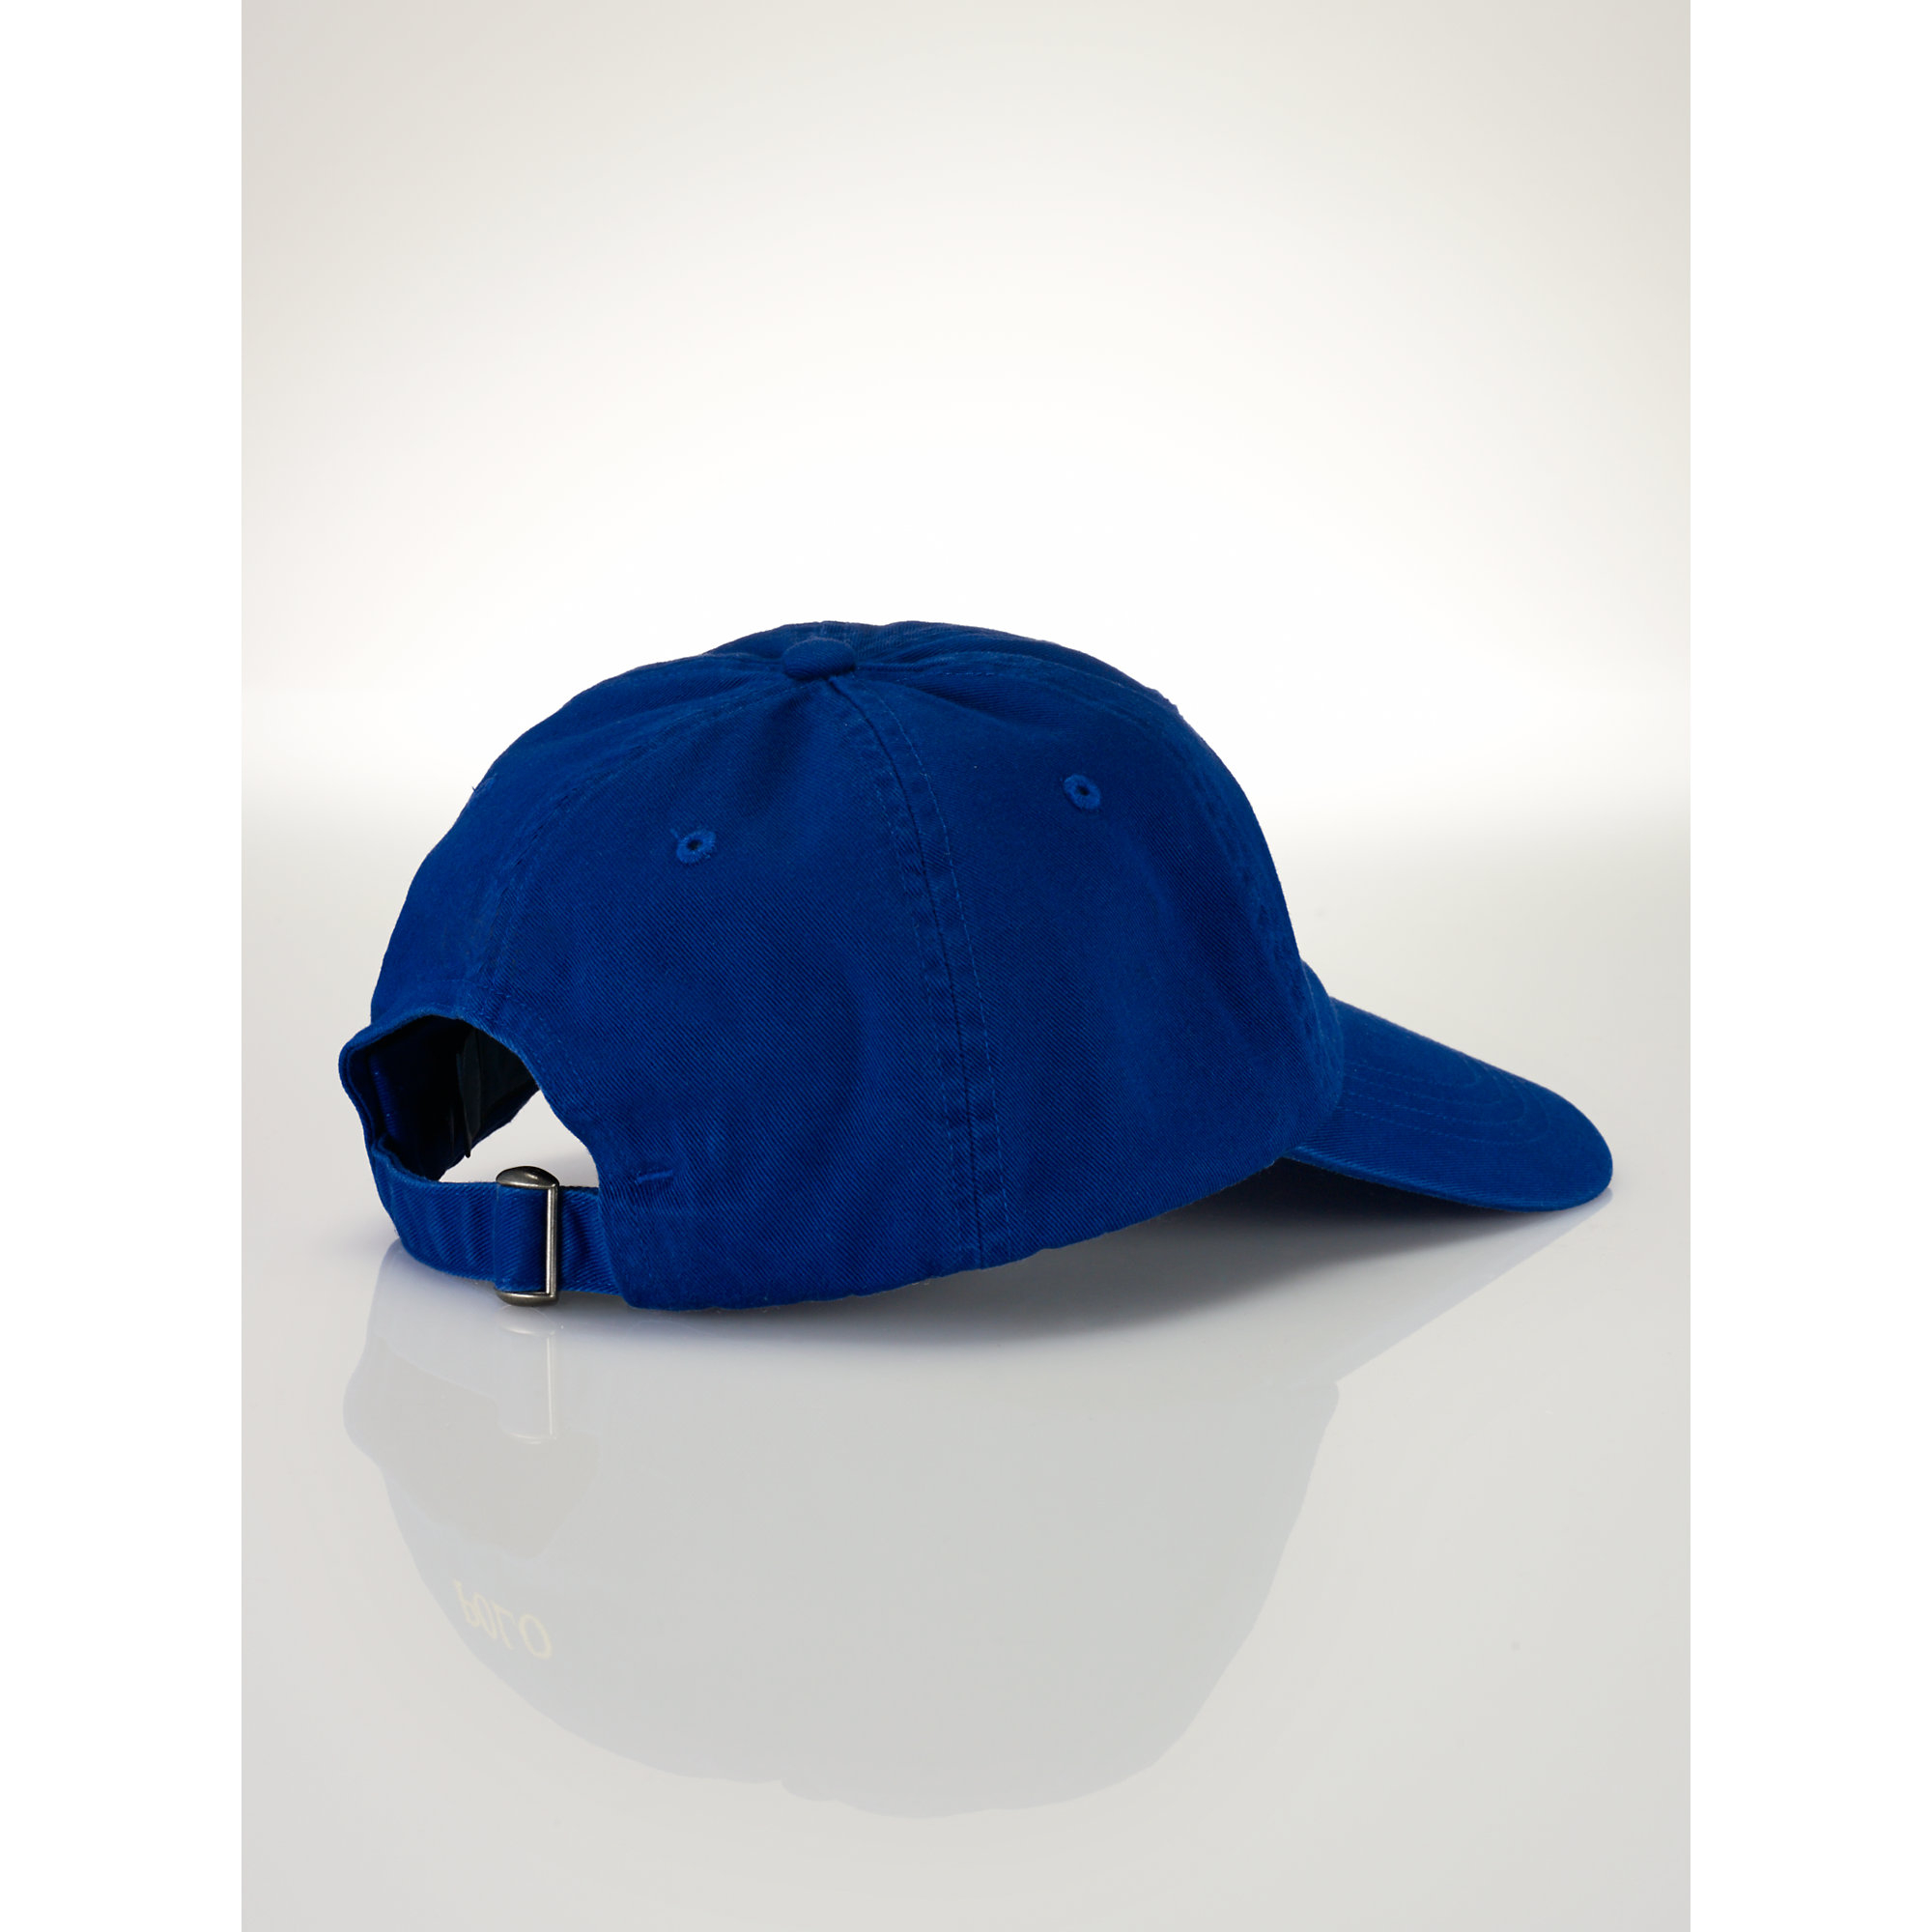 polo ralph lauren signature pony cap in blue for men blue. Black Bedroom Furniture Sets. Home Design Ideas